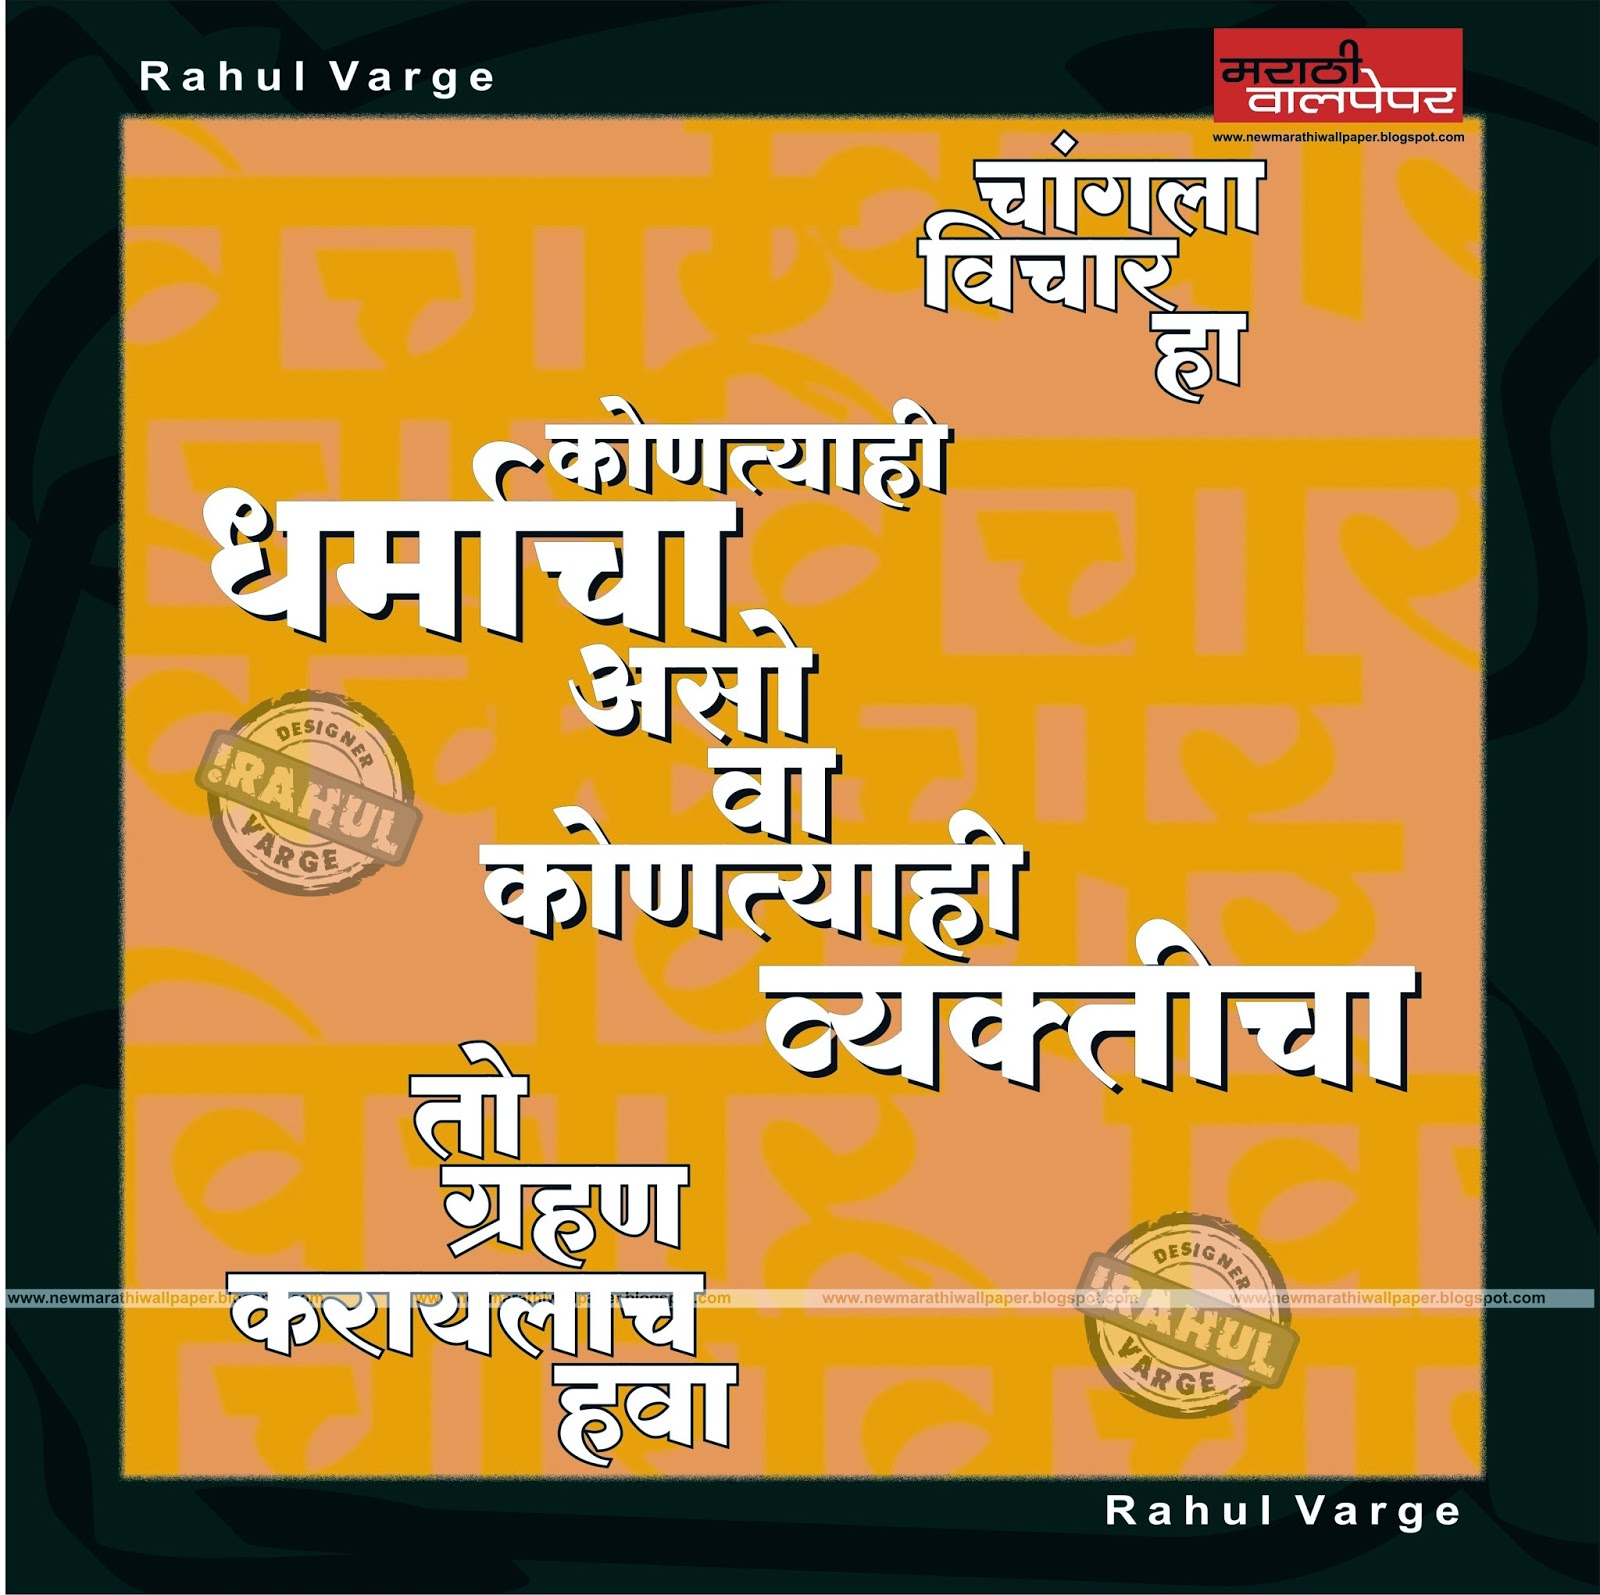 New Good Thoughts In Marathi Ukhane